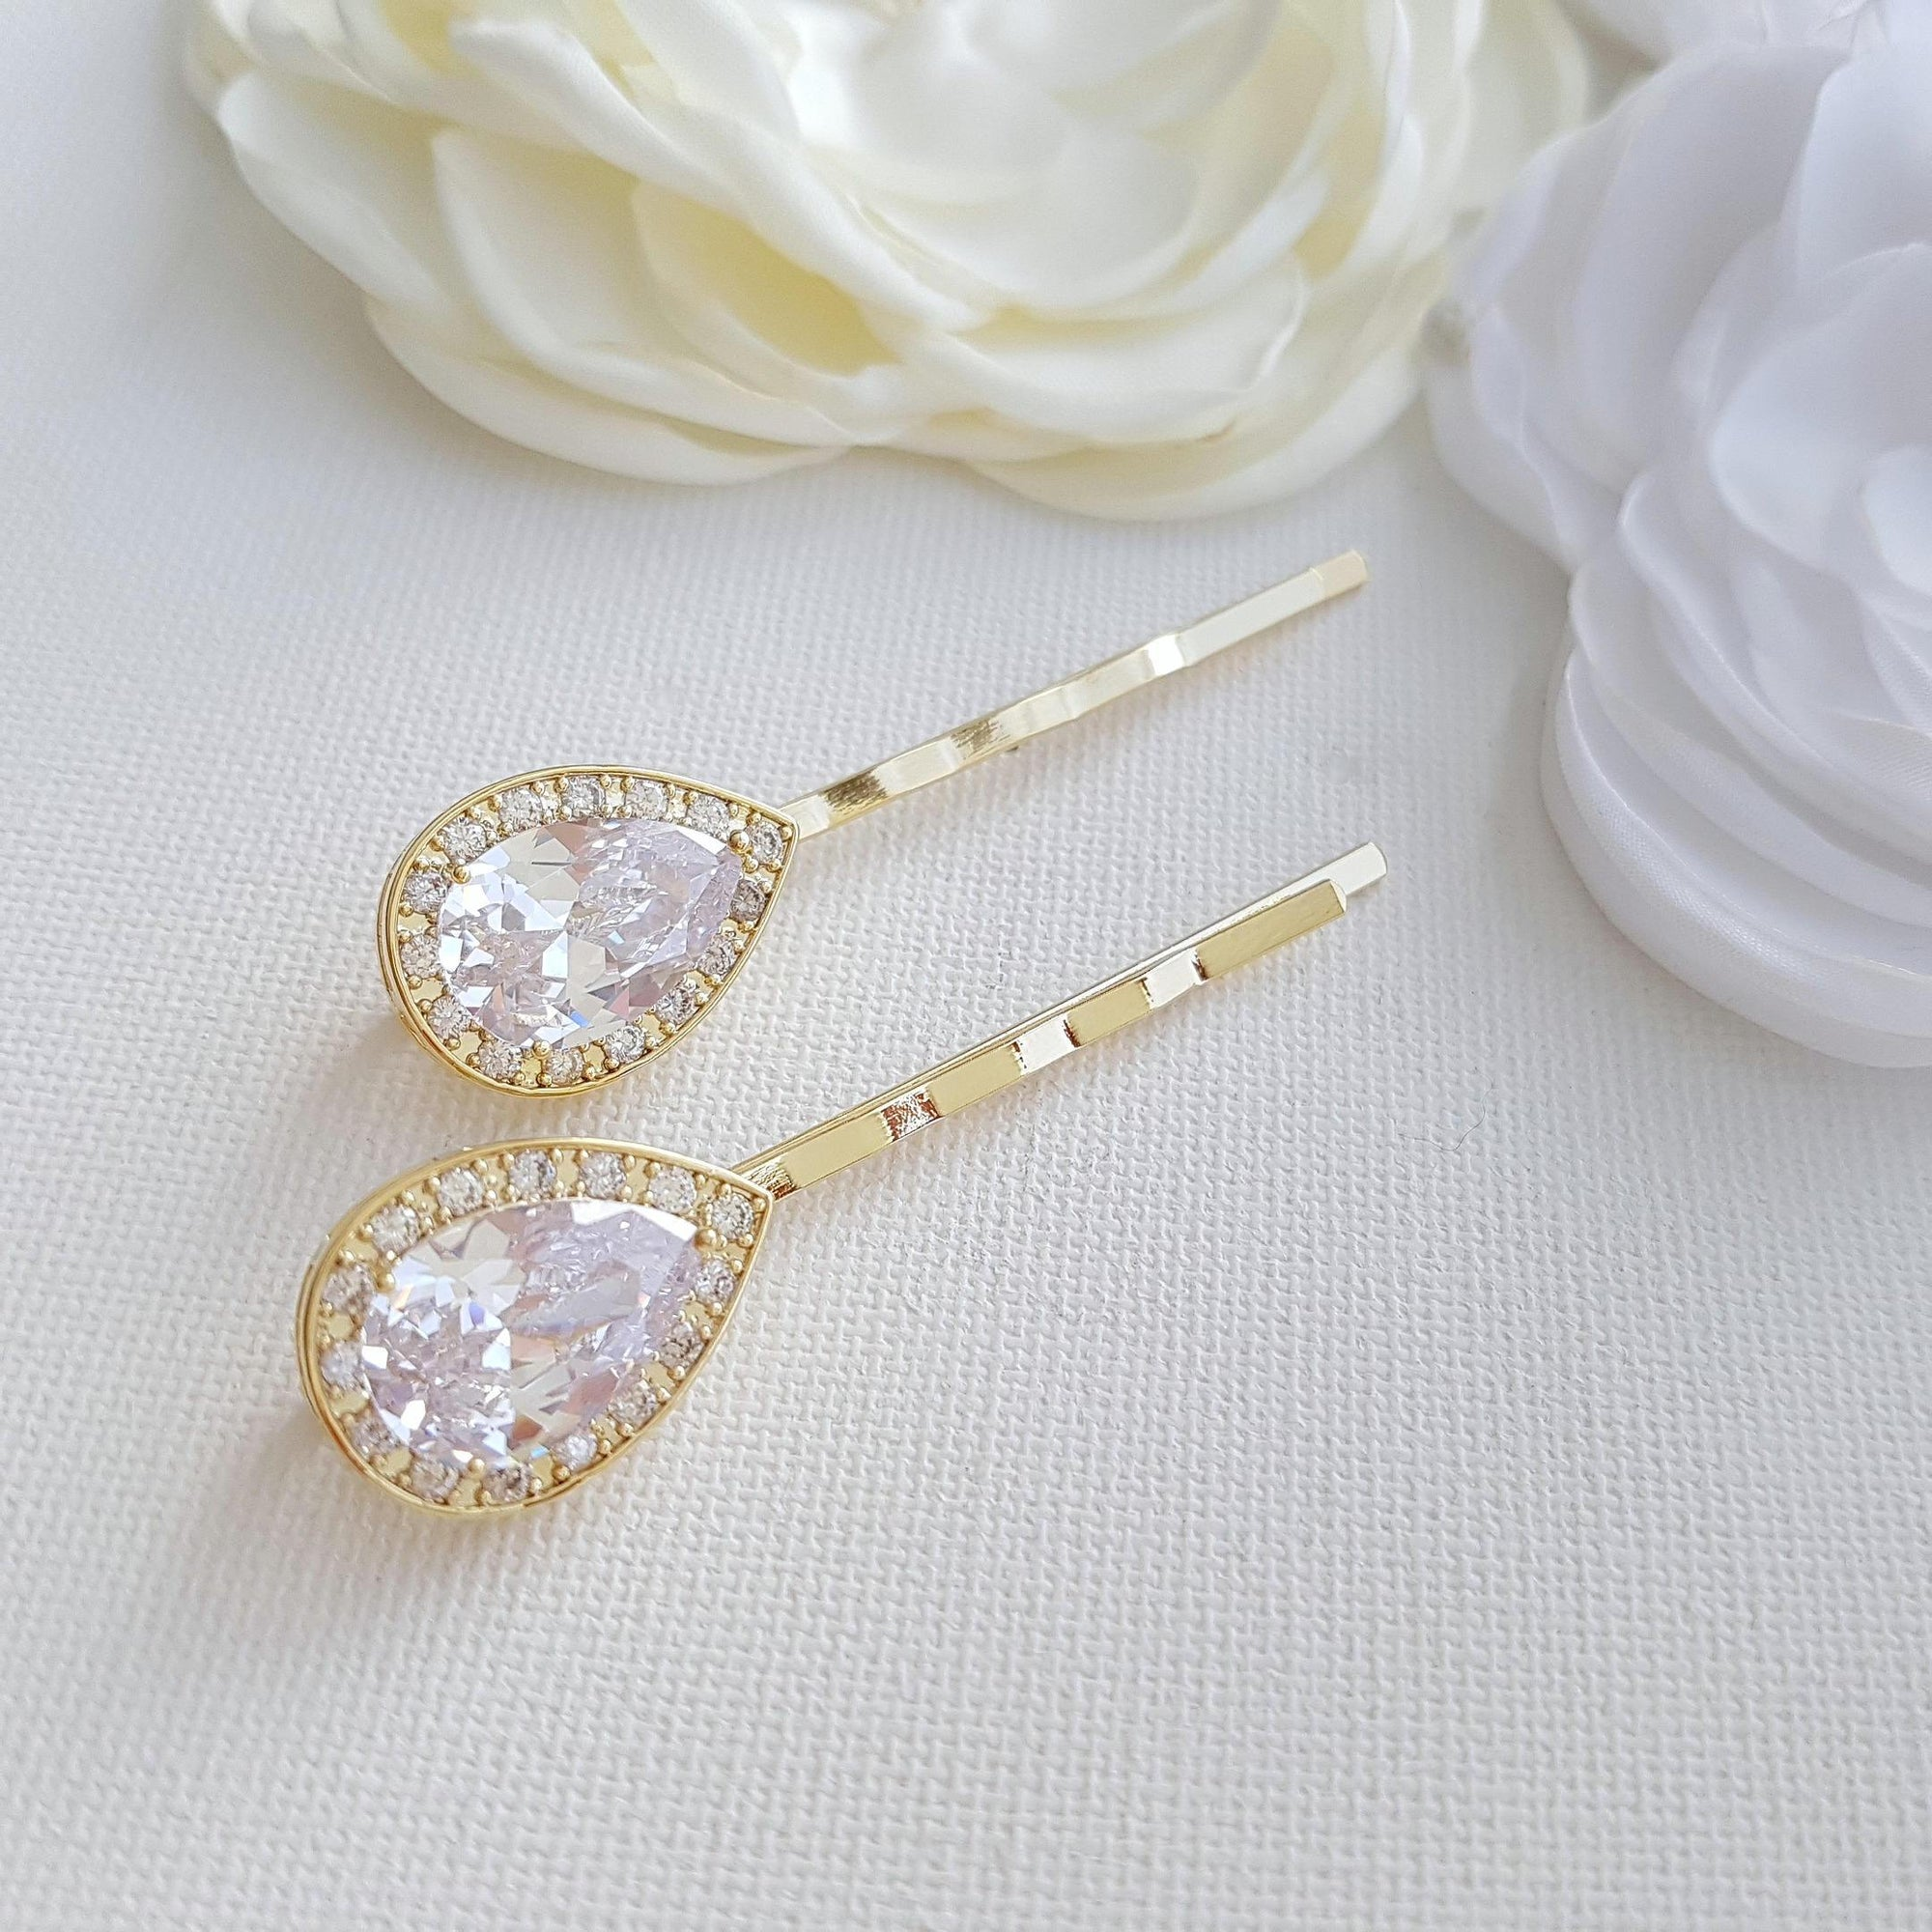 Gold Bridal Hair Pins- Evelyn - PoetryDesigns